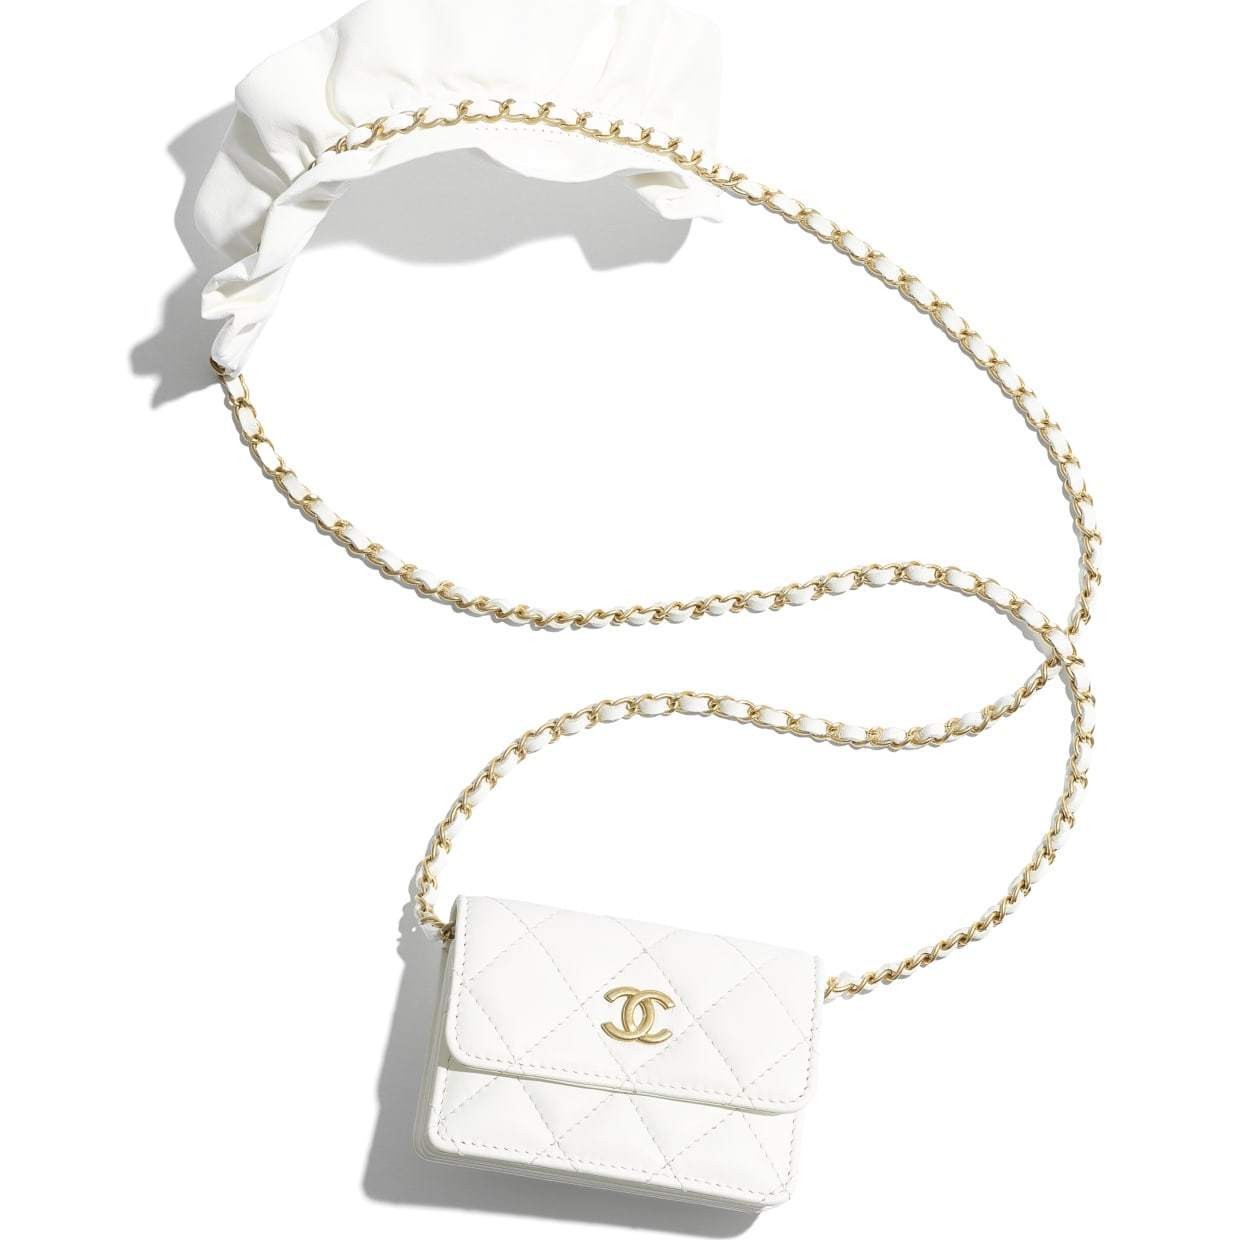 CHANEL CHANEL ☆flap card holder with chain ☆AP1895 B04369 10601